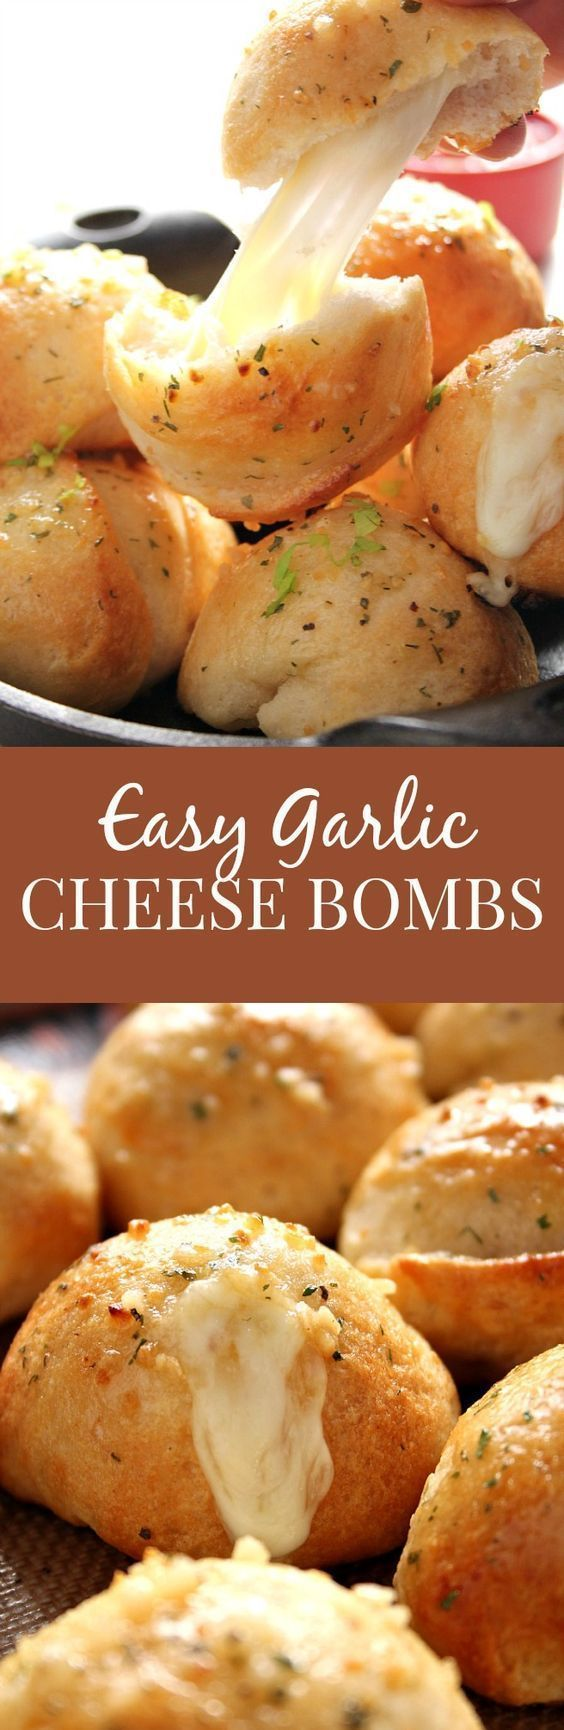 Easy Garlic Cheese Bombs Recipe – biscuit bombs filled with gooey mozzarella, brushed with garlic